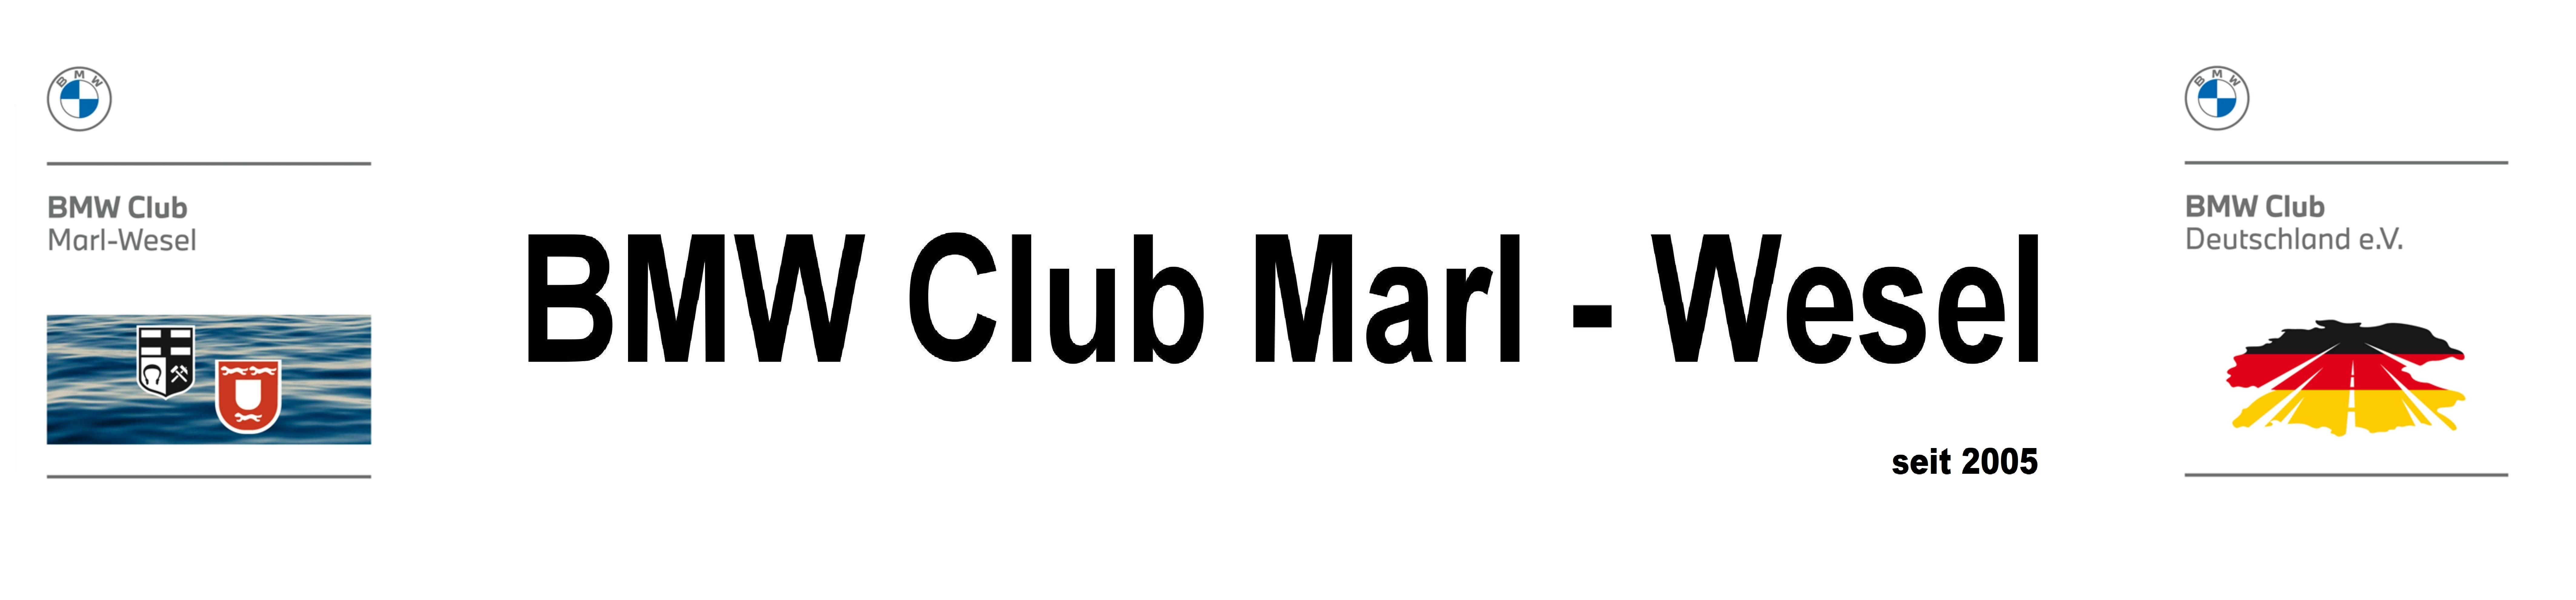 BMW Club Marl